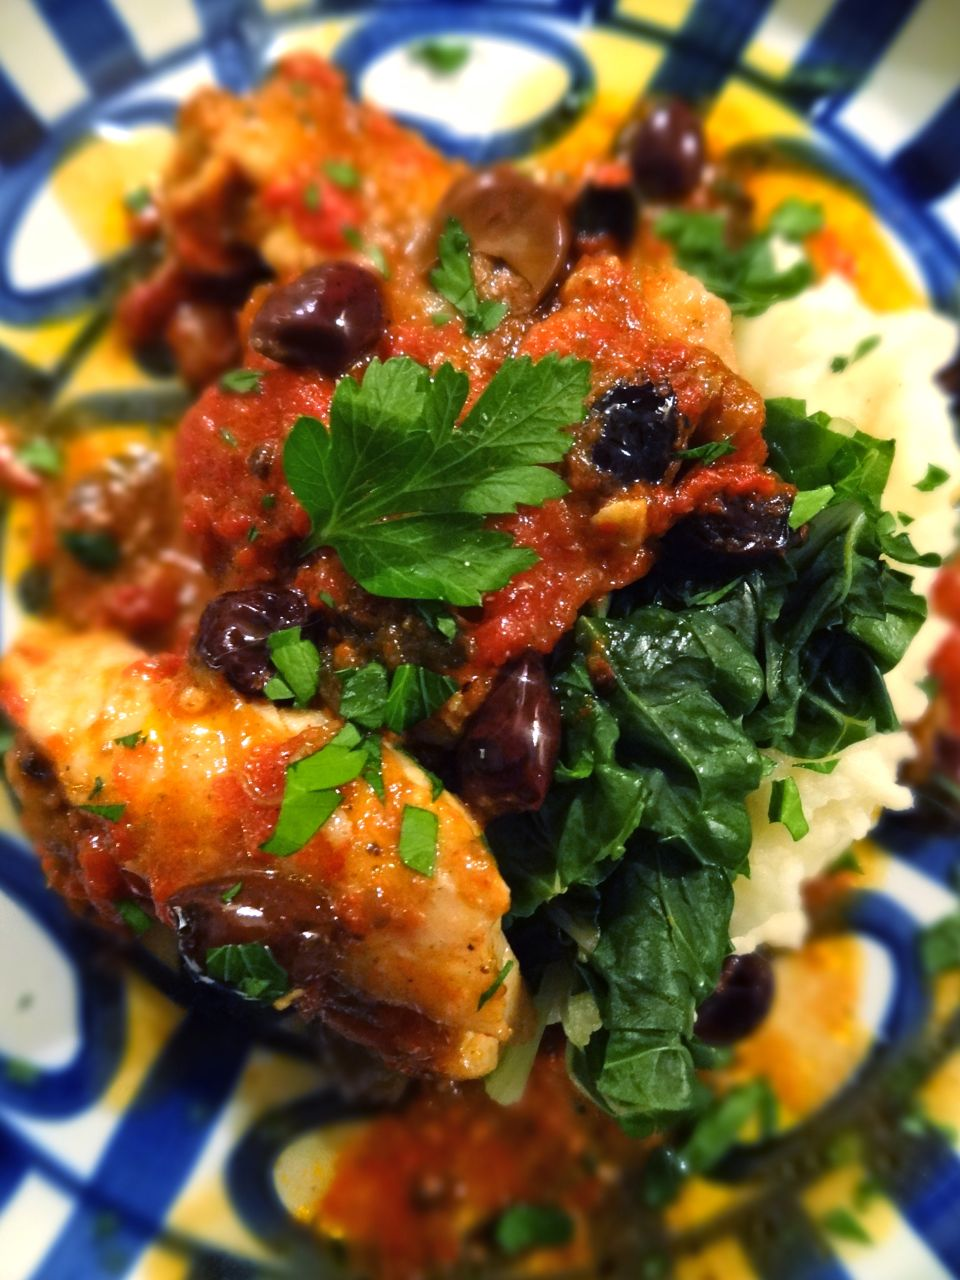 Scrumpdillyicious: Red Snapper with Tomatoes, Olives & Swiss Chard